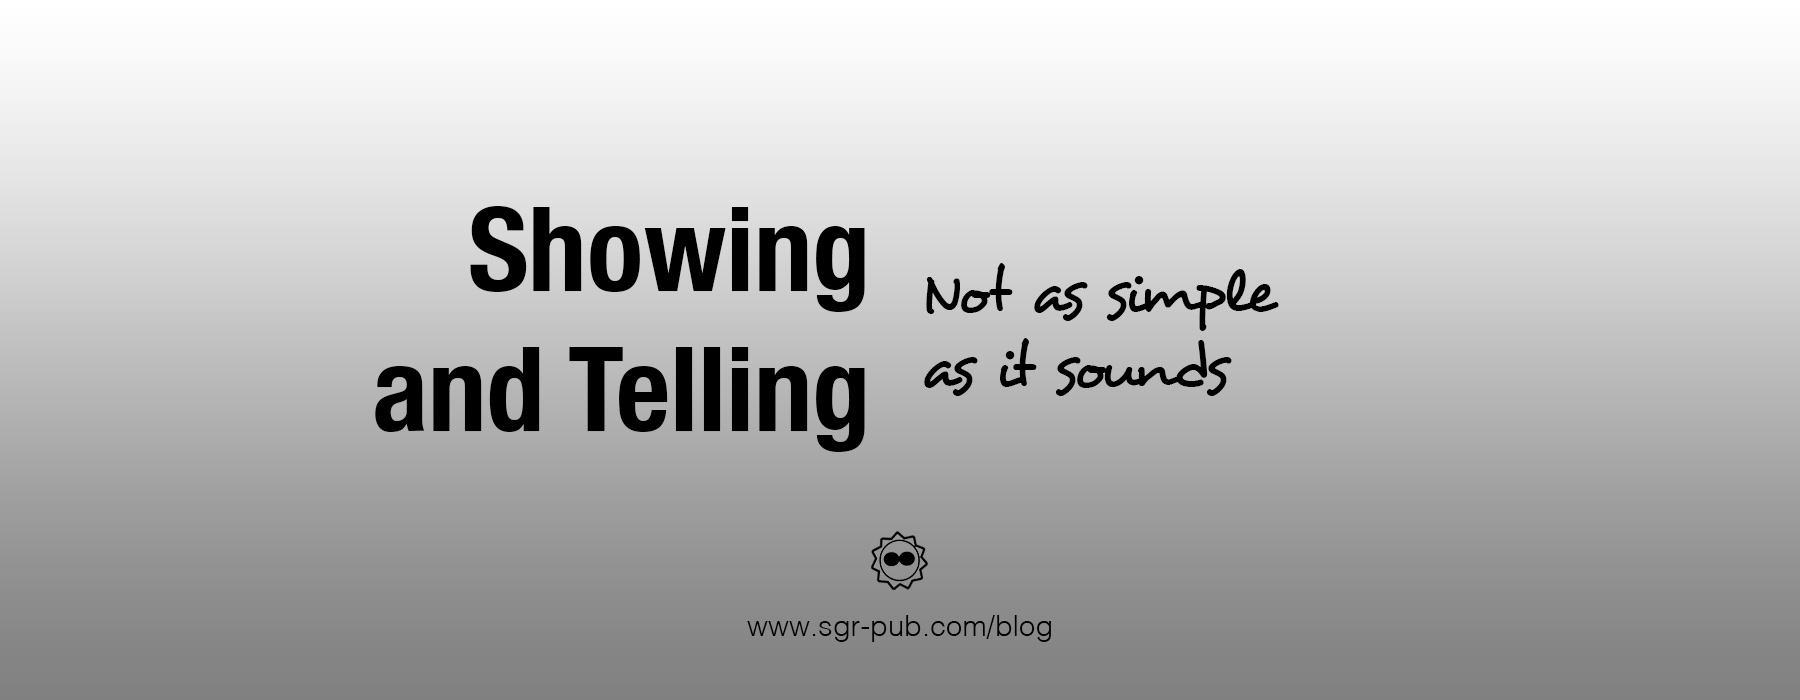 Showing and telling: not as simple as it sounds